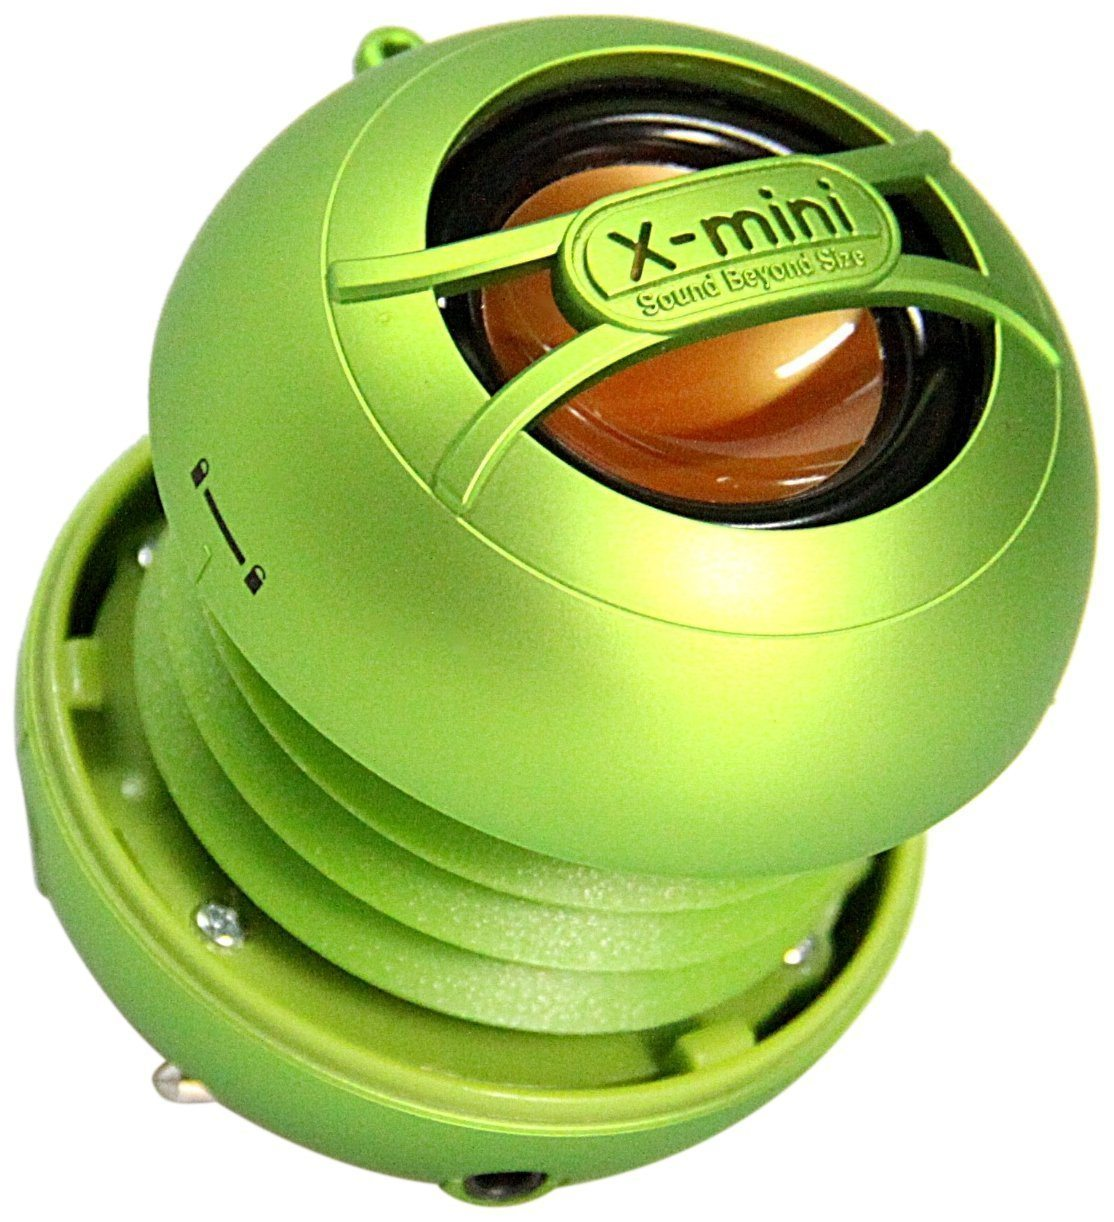 X-mini UNO Portable Capsule Speaker - Green